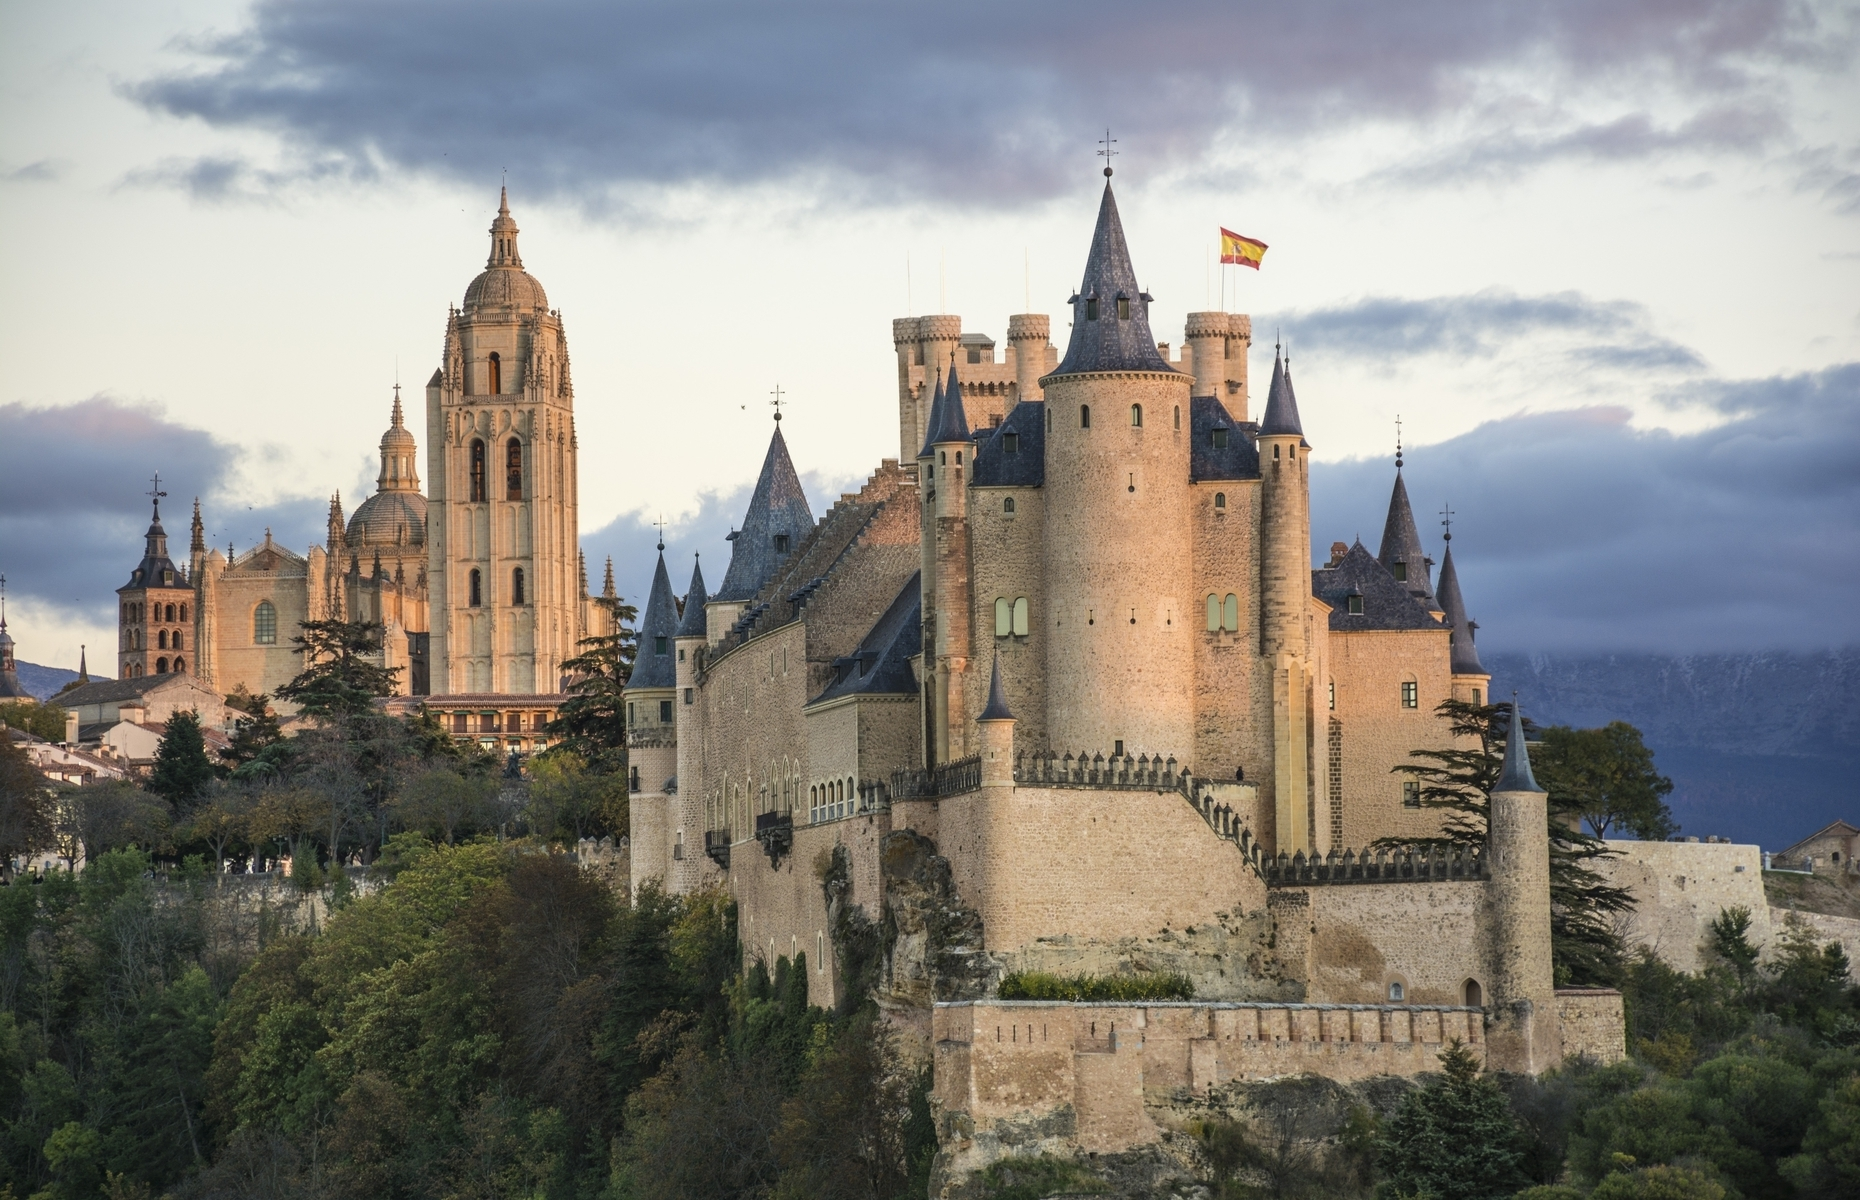 Slide 30 of 41: The Queen's castle in the movie version of Snow White and the Seven Dwarfs was inspired by the Alcázar of Segovia in Spain.